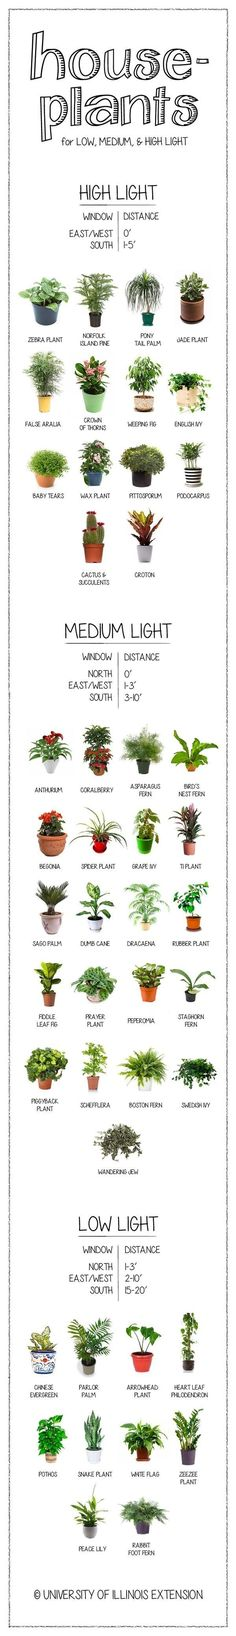 Handy Helpful House-Plant Diagrams #Planting #DIY #Ideas RealPalmTrees.com New Ideas #palmtrees #creative #GreatView #CoolPlants #Plants #homeIdeas #Outdoorliving #2015